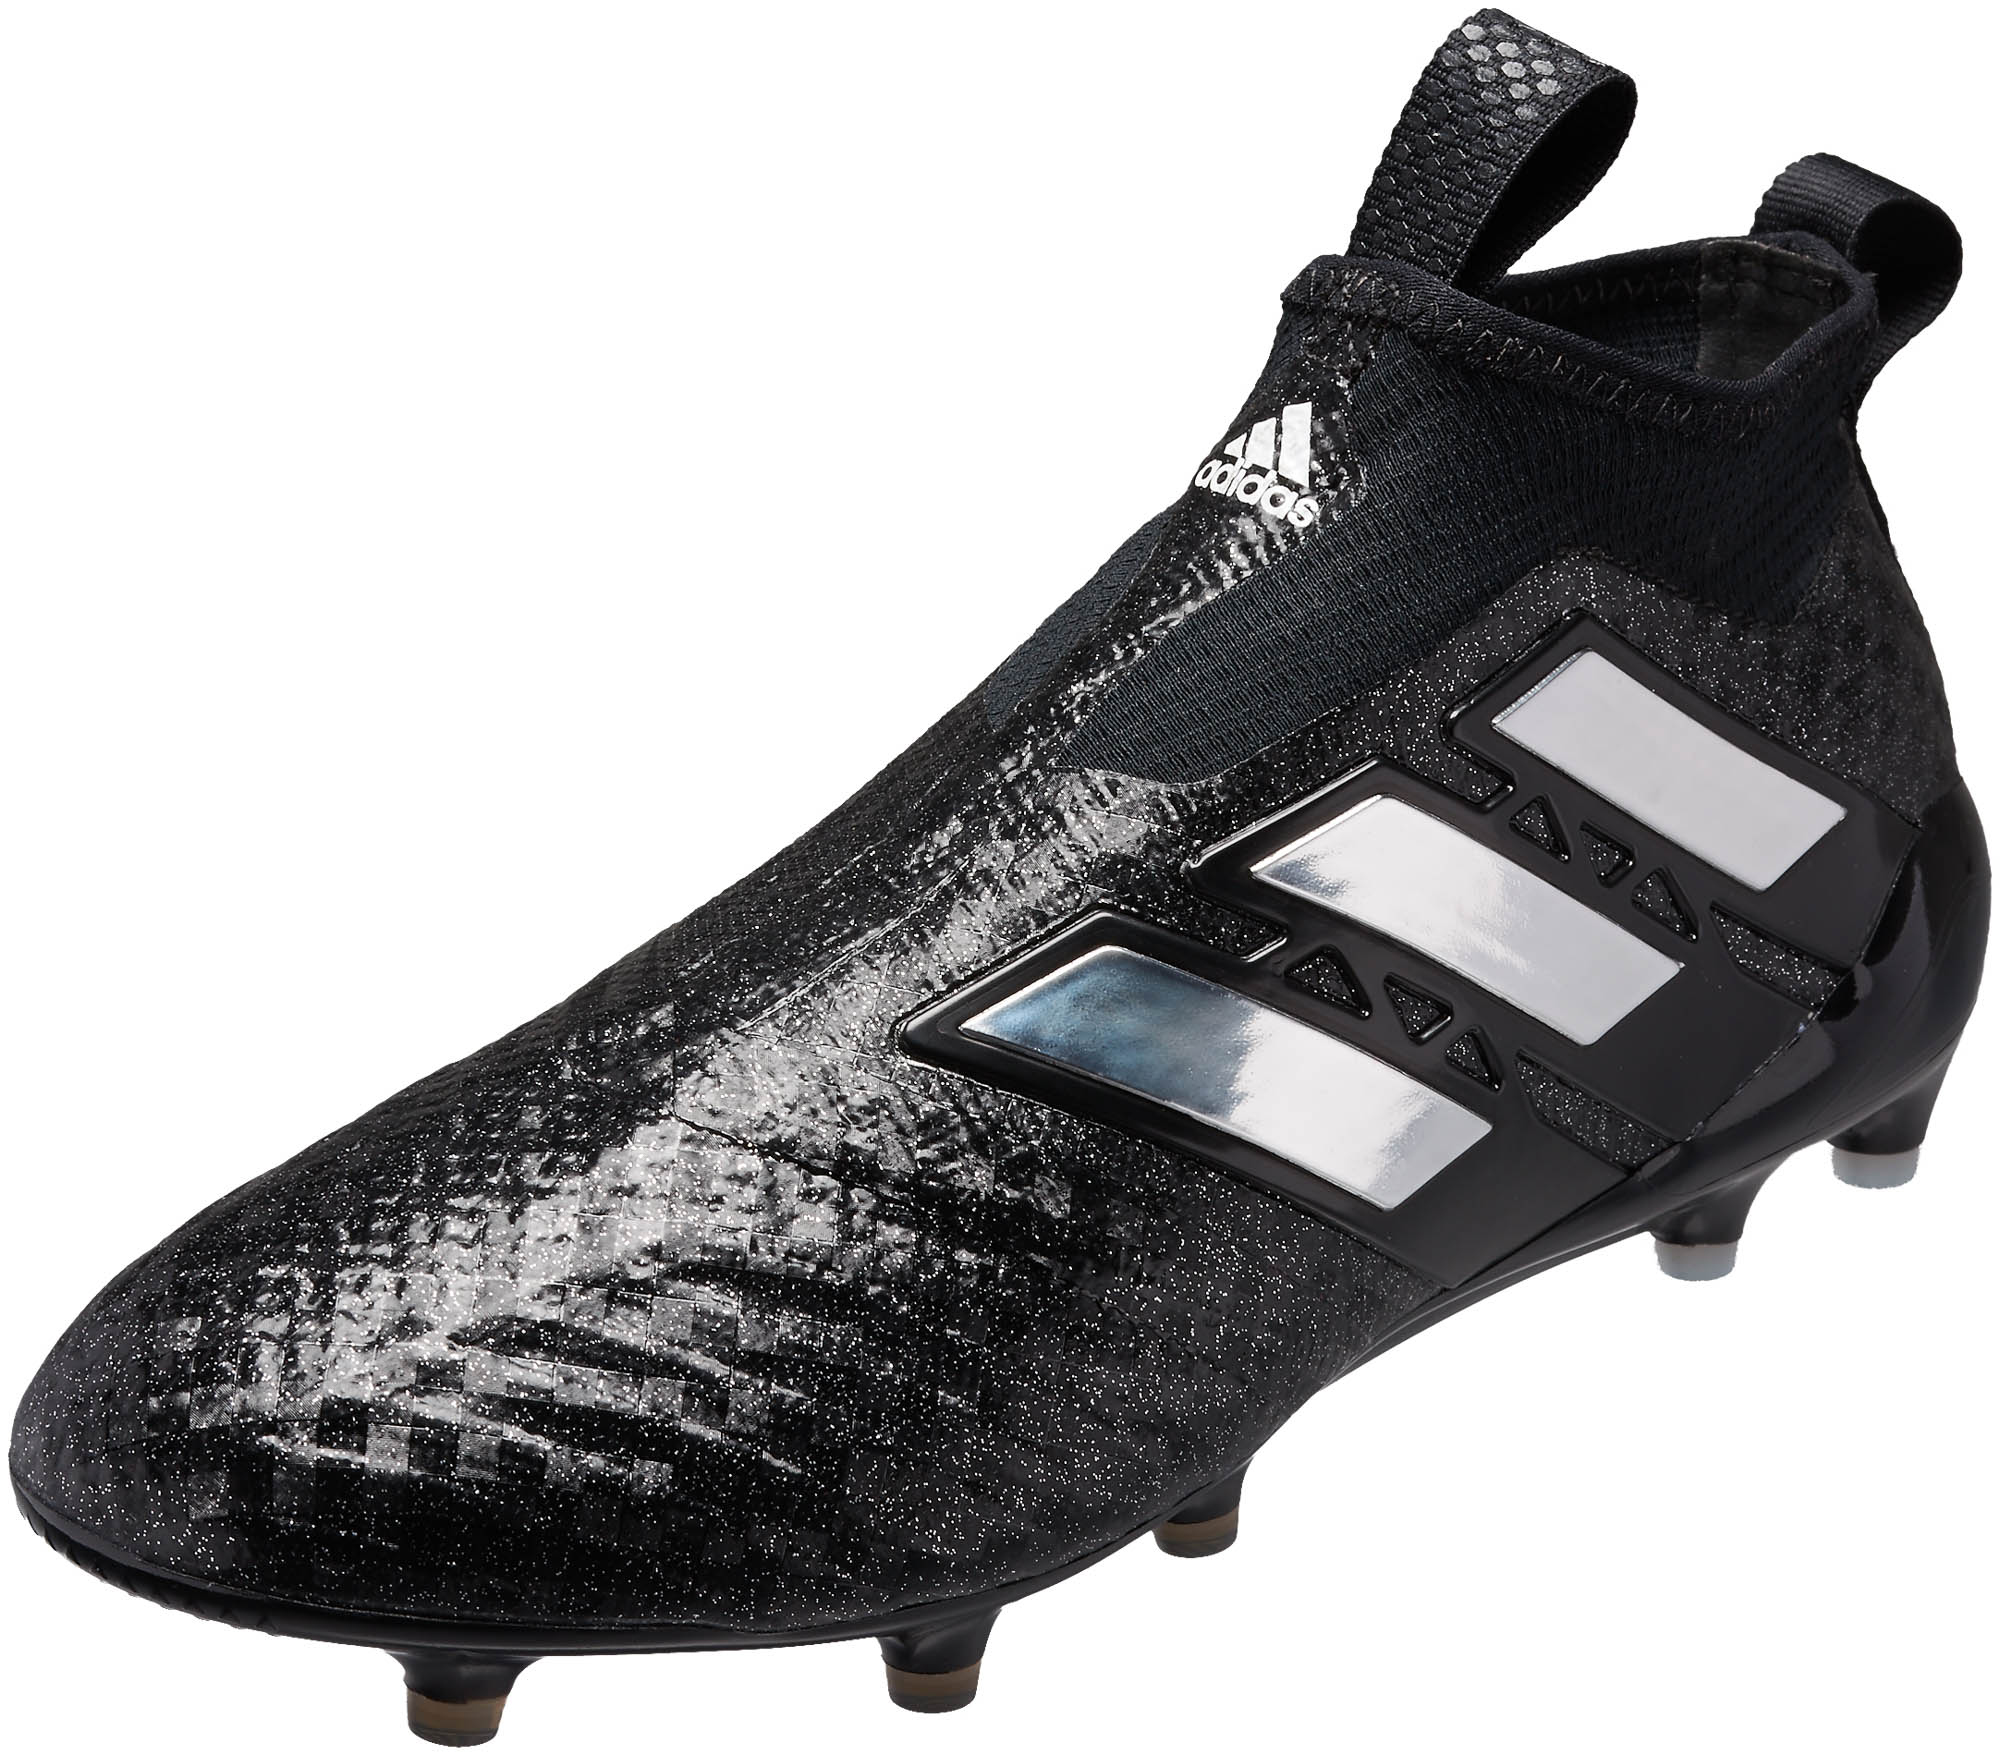 super popular e66cc 6c2f2 adidas ACE 17+ Purecontrol FG Soccer Cleats – Black   White